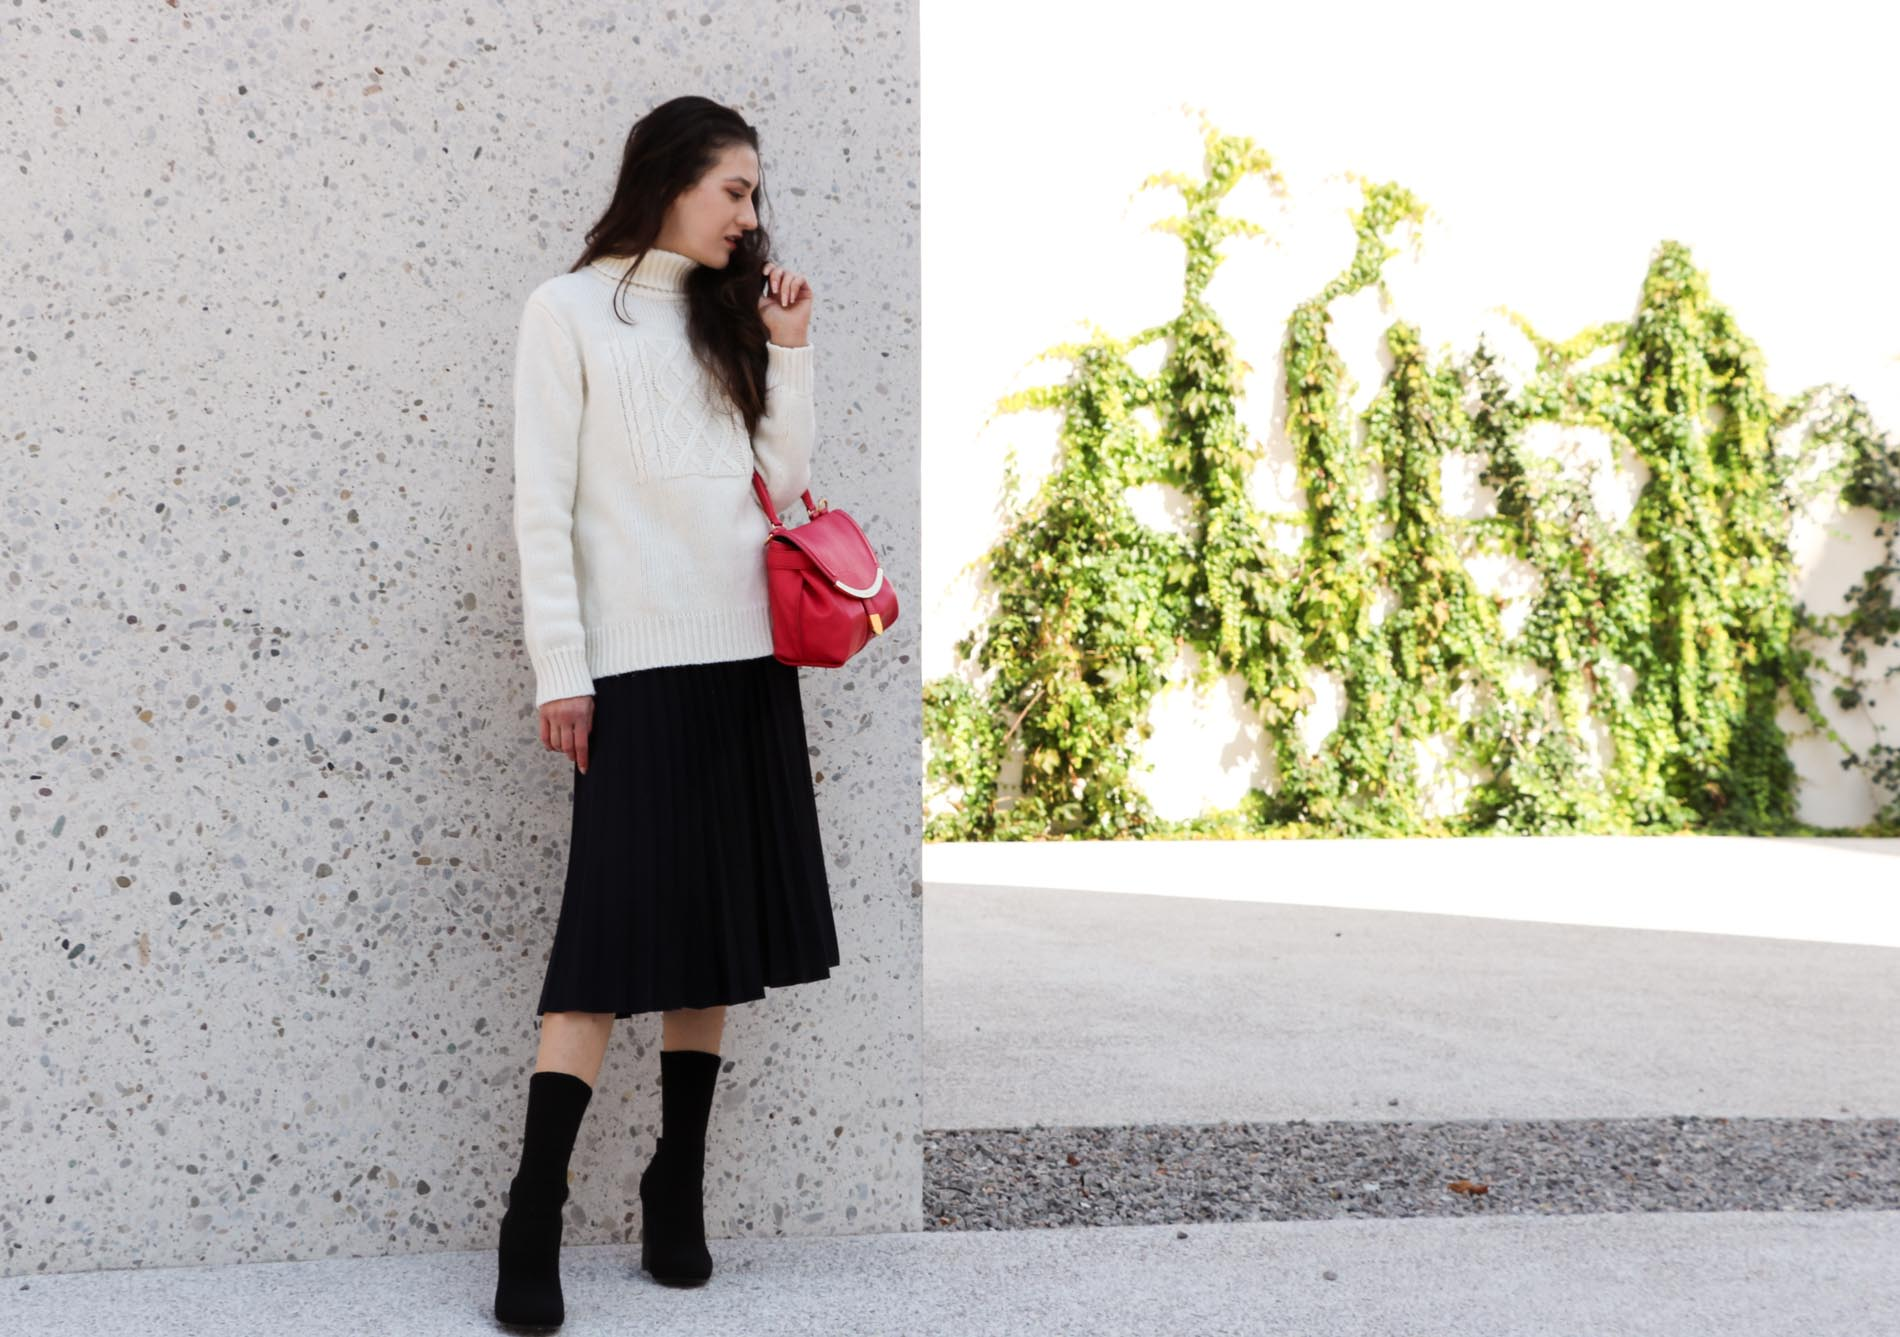 Fashion Blogger Veronika Lipar of Brunette from Wall Street dressed in white oversized cable knit sweater, black pleated midi skirt, pink top handle bag from See by Chloe and black sock boots from Elena Iachi